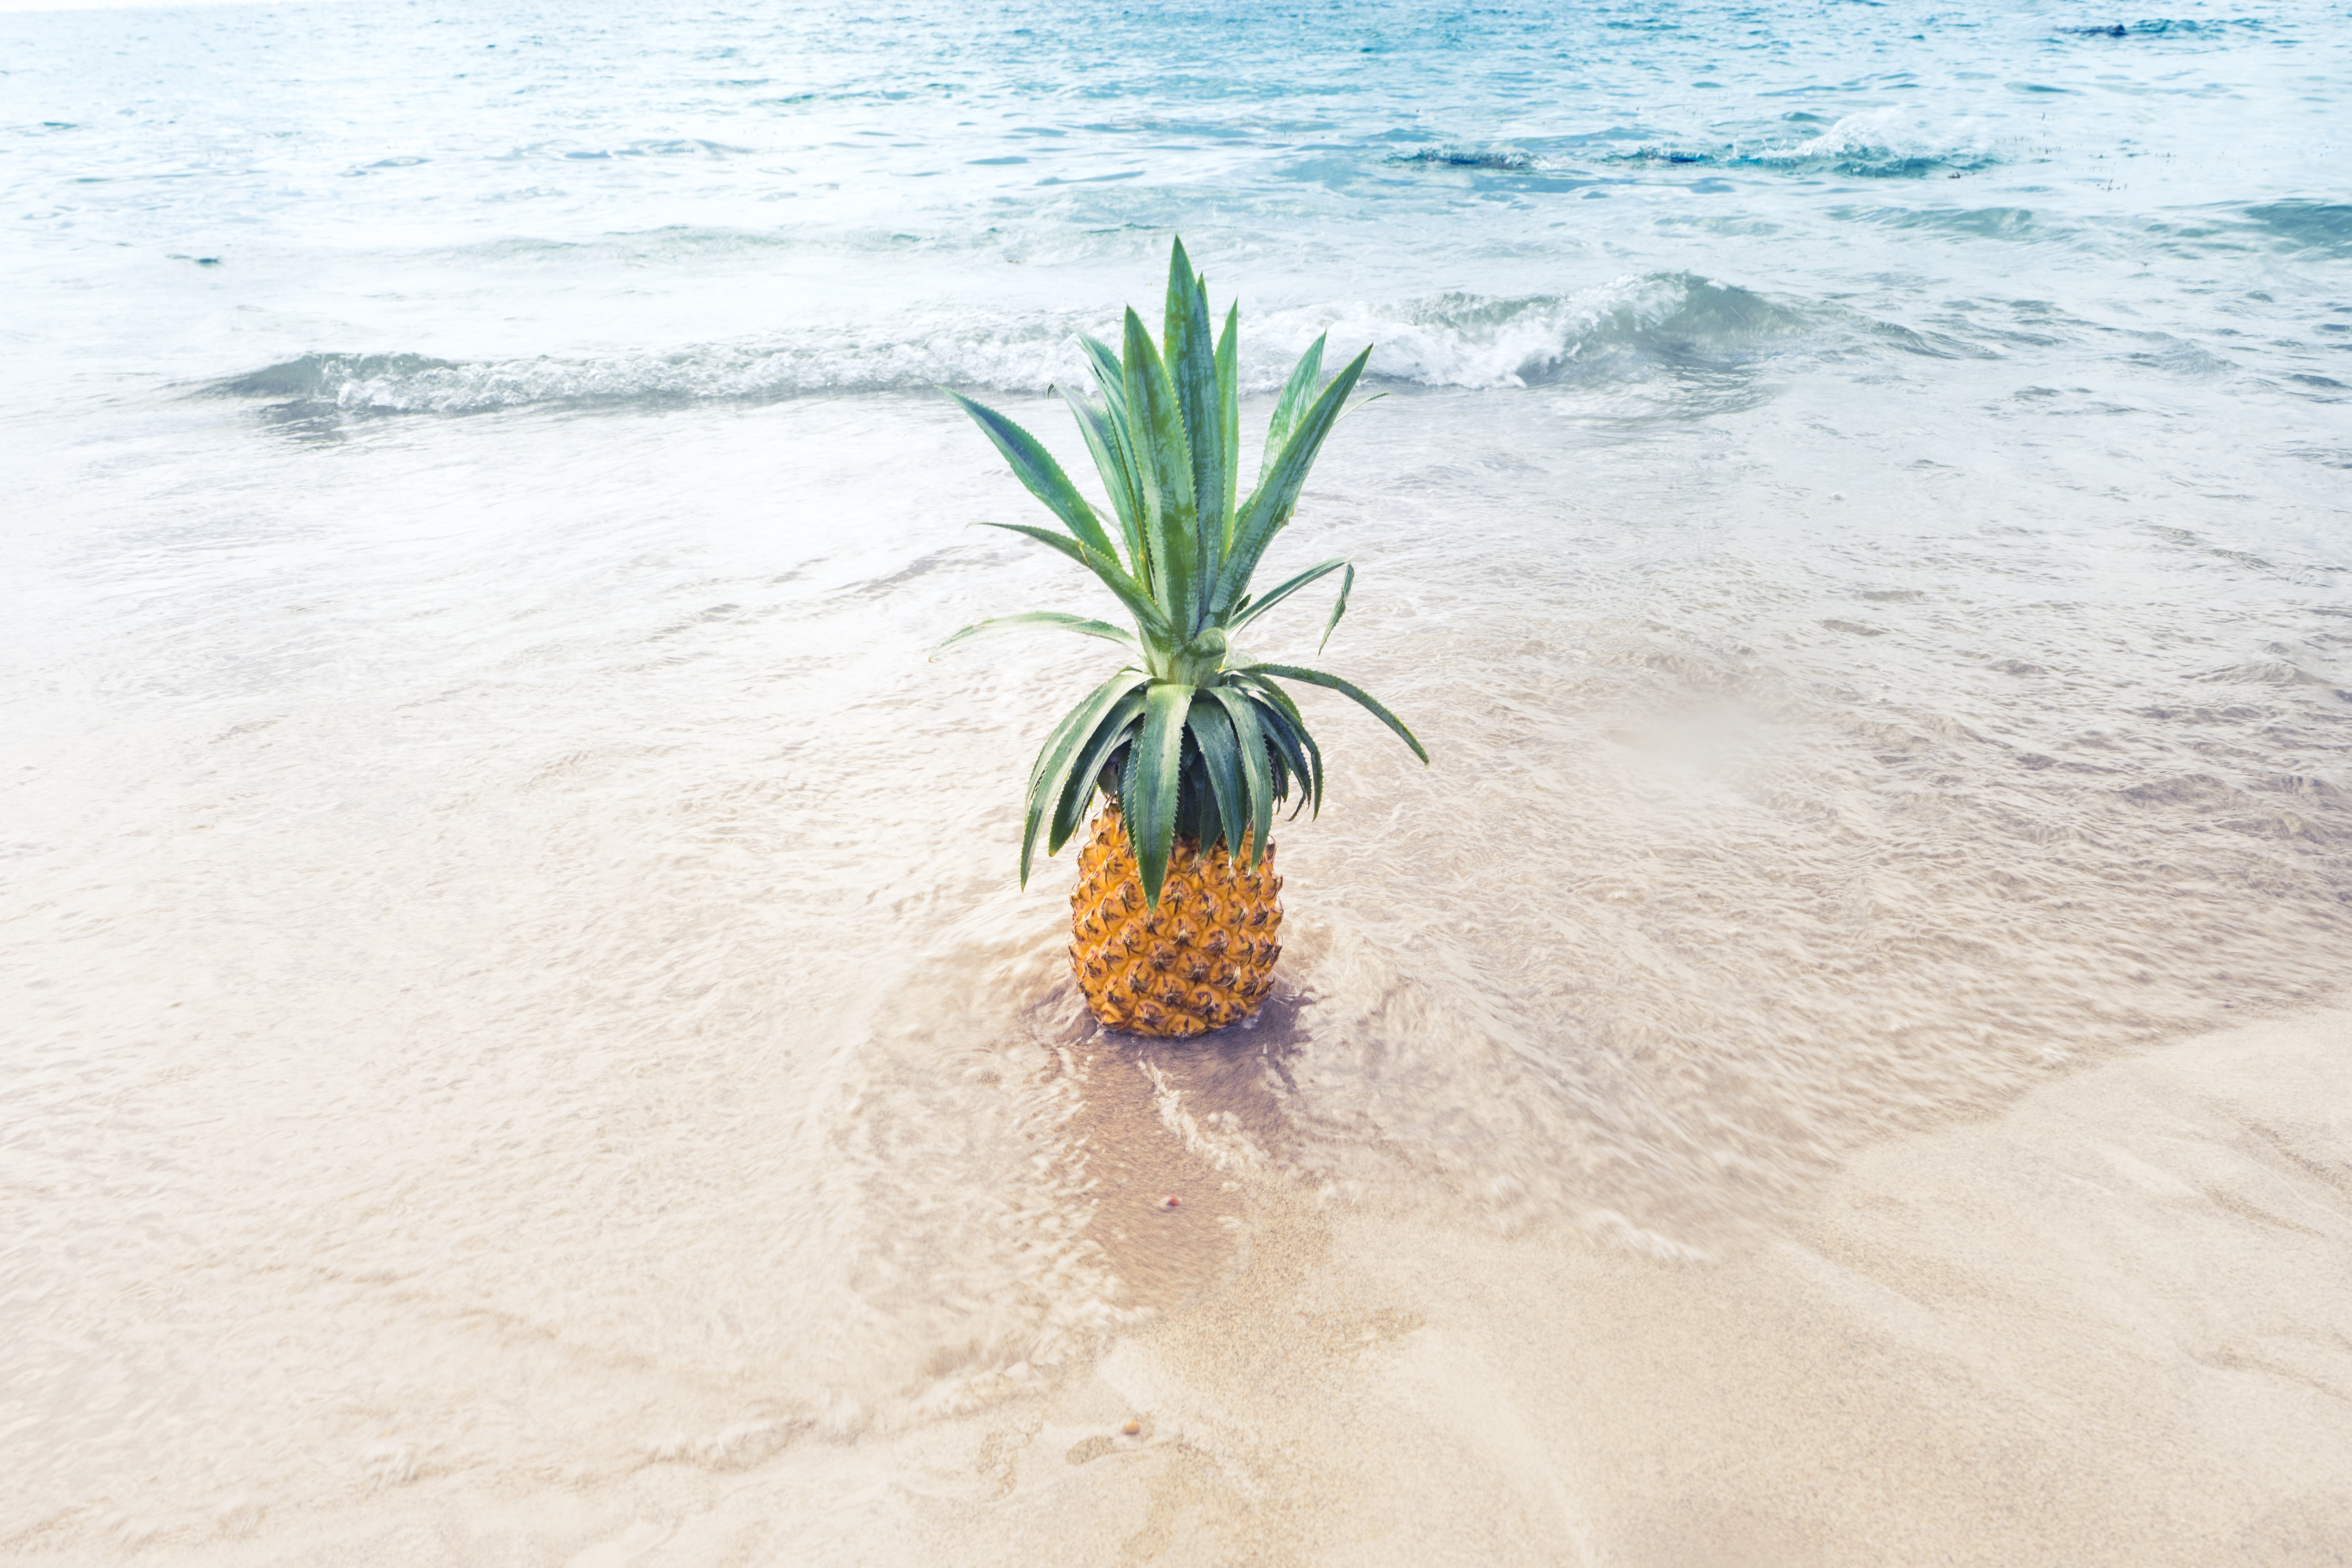 A pineapple on the beach with tidewwater.